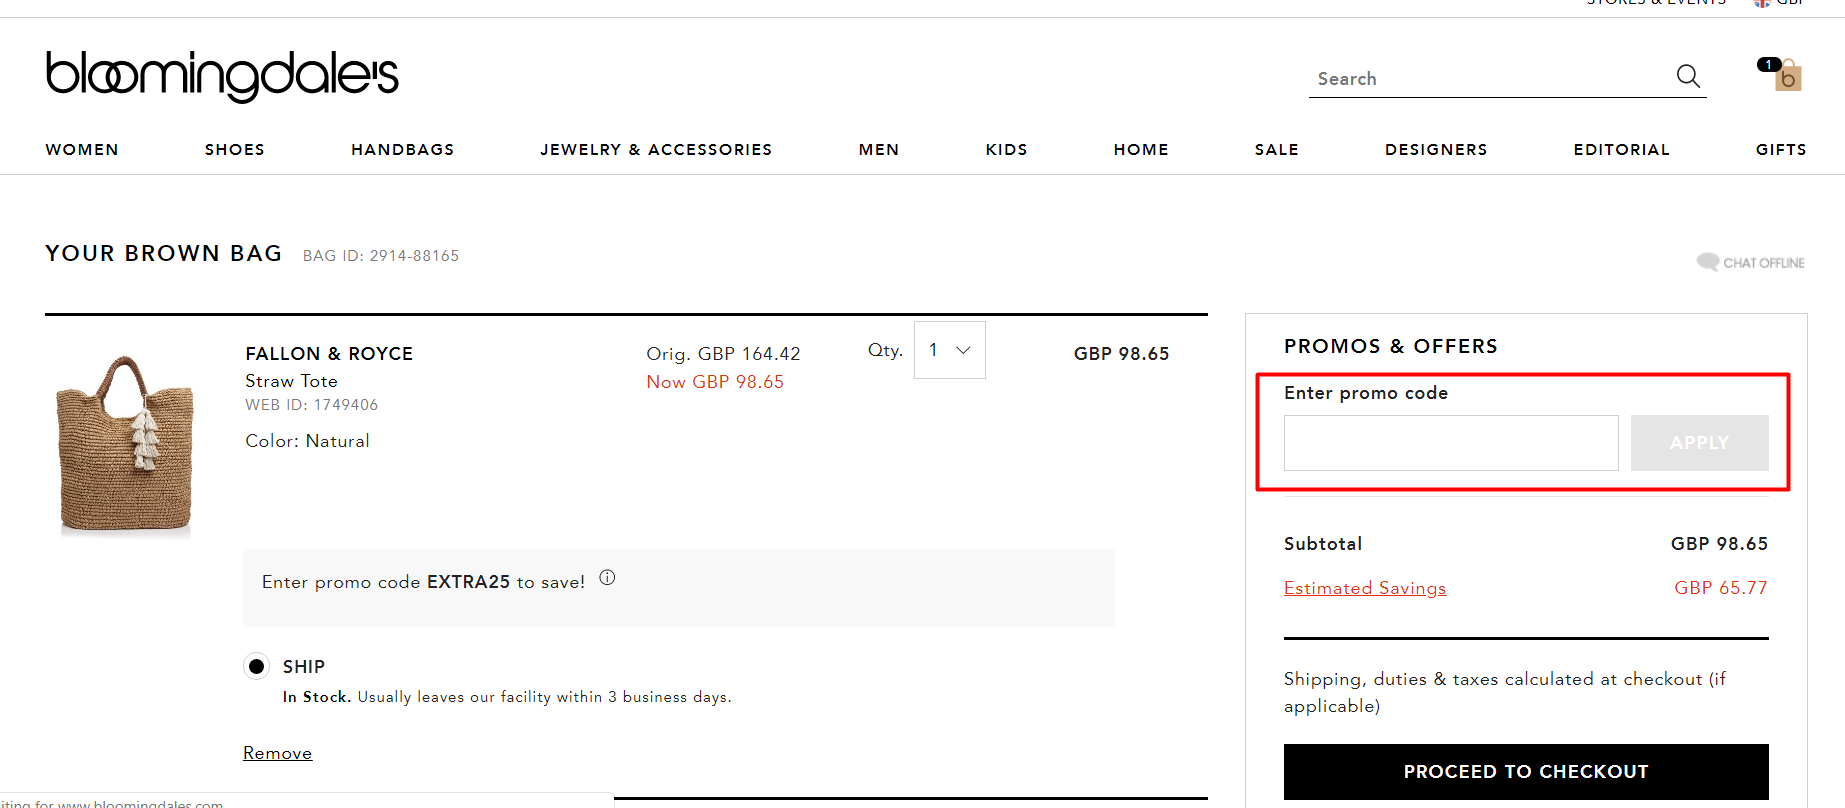 How do I use my Bloomingdale's discount code?